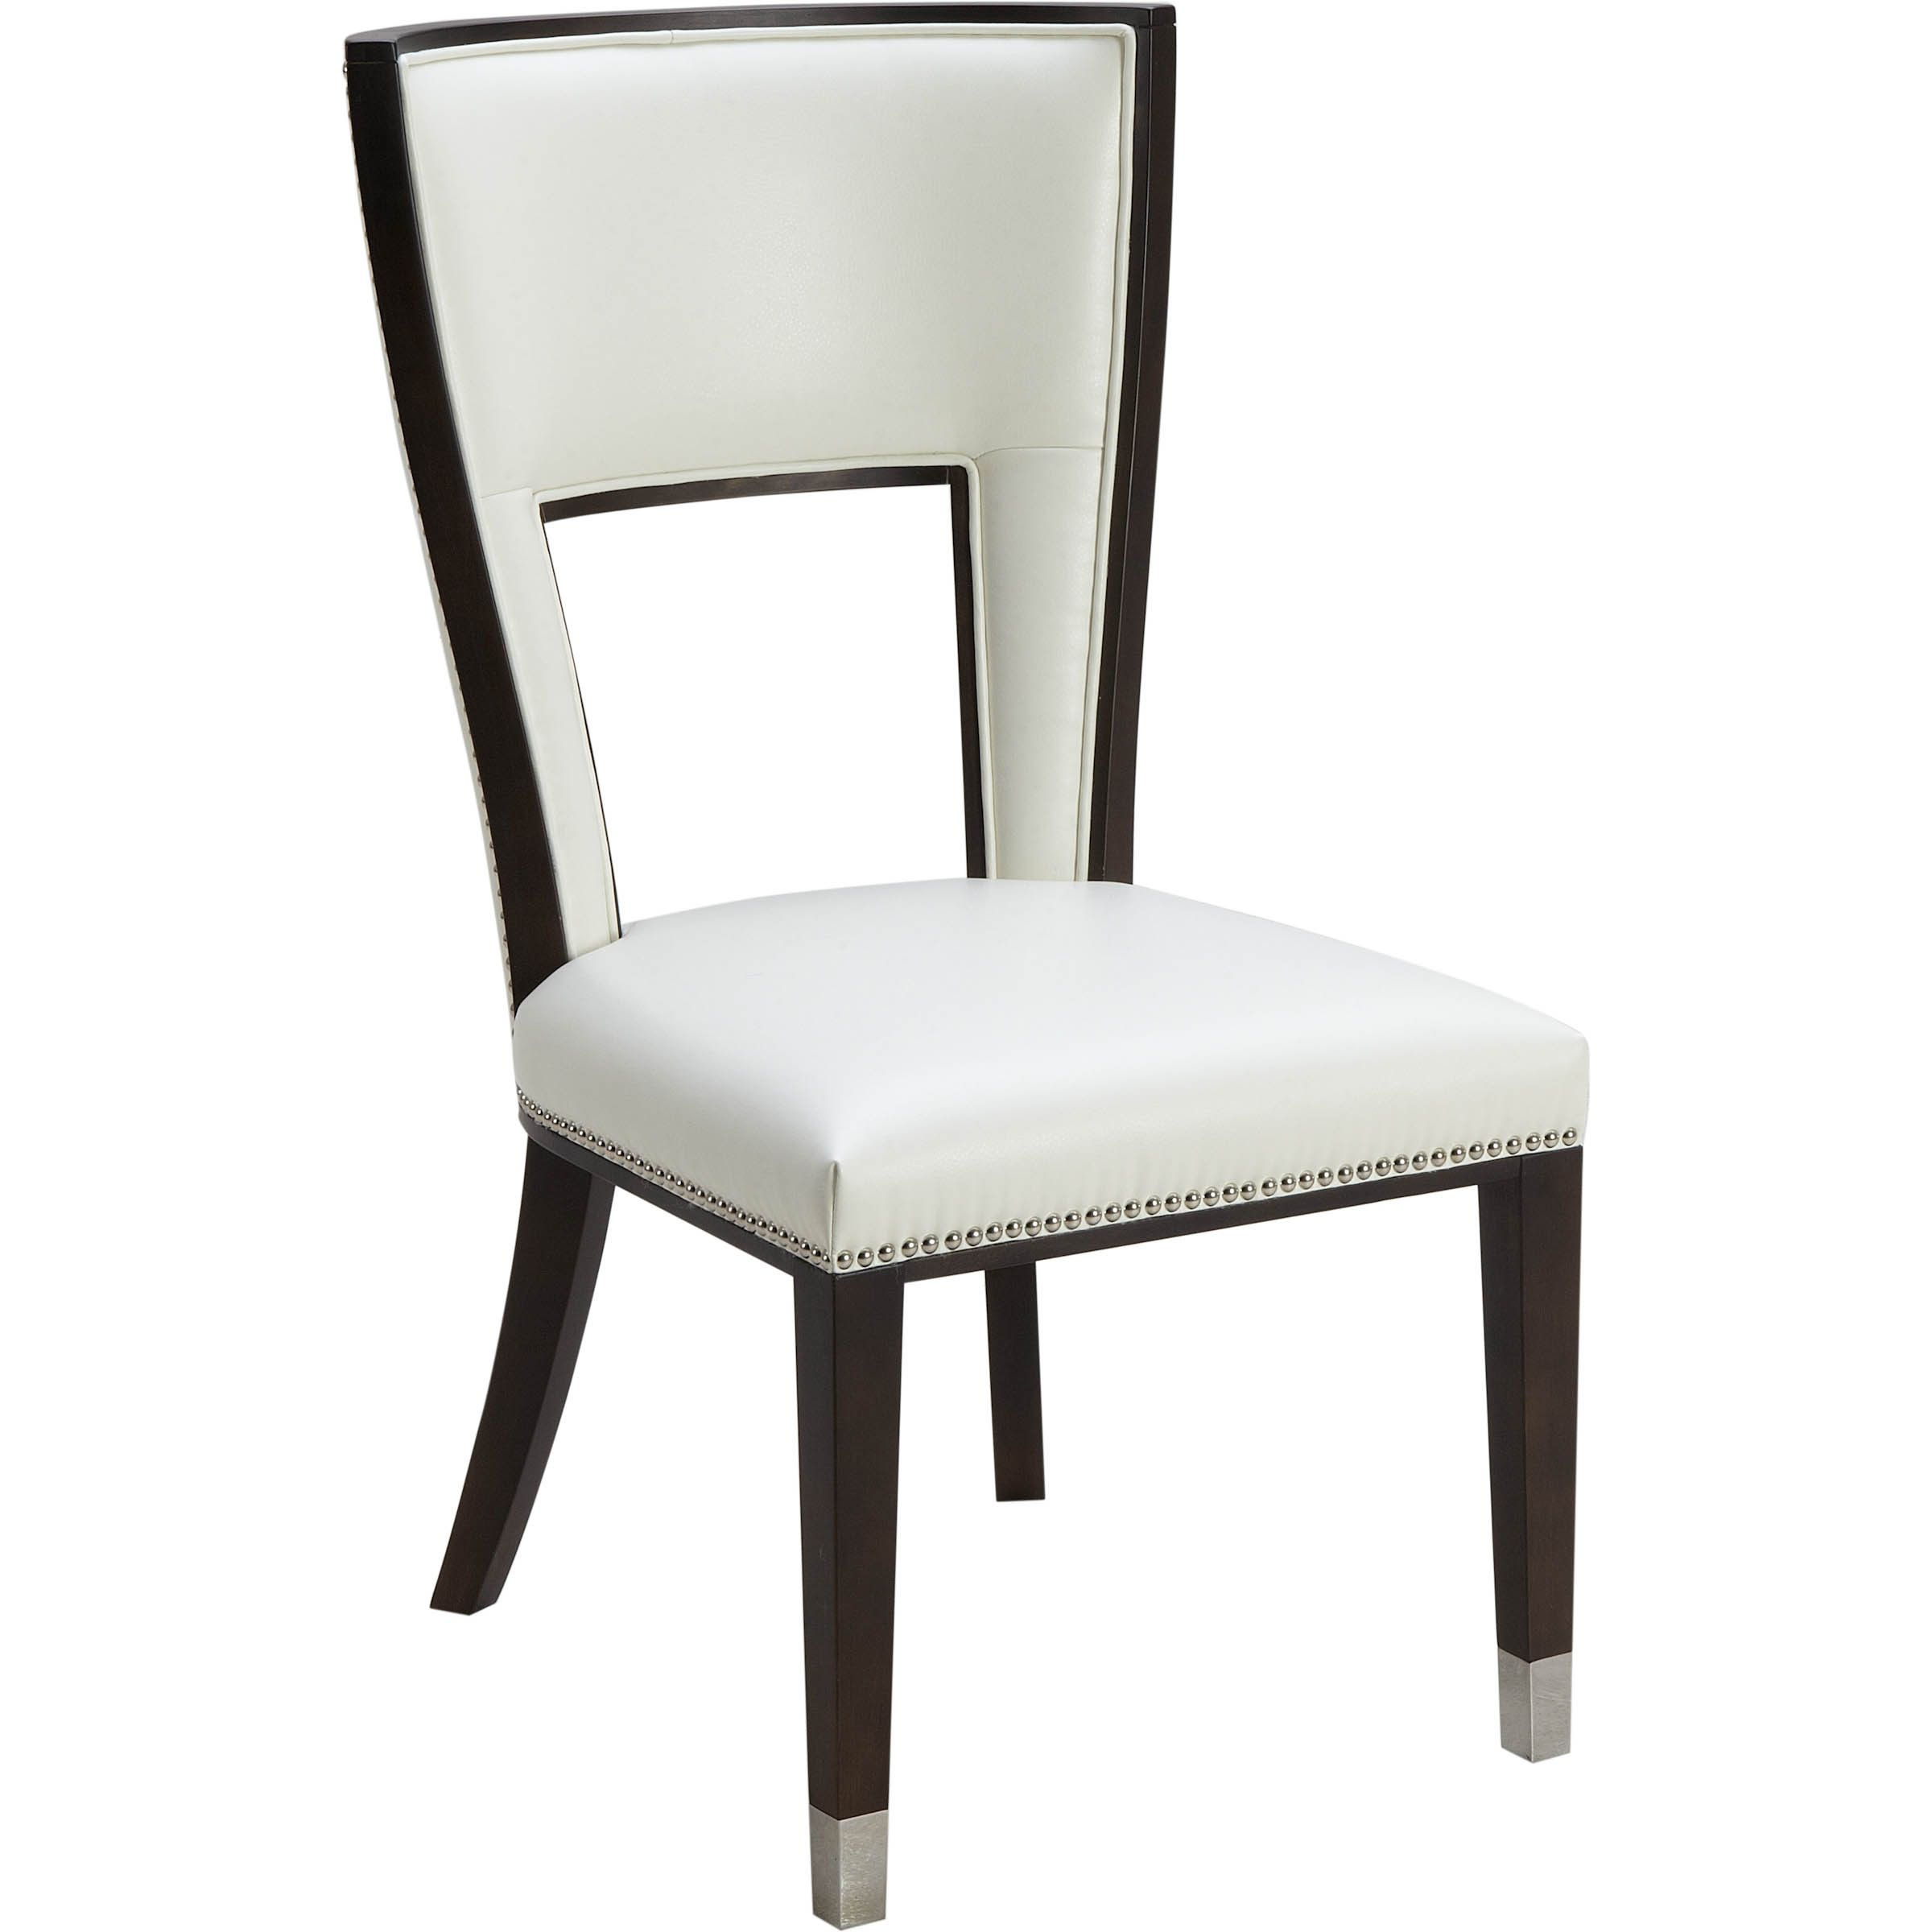 Astonishing Sunpan 5West Naples Dining Chair Naples Dng Chr Ivory Spiritservingveterans Wood Chair Design Ideas Spiritservingveteransorg